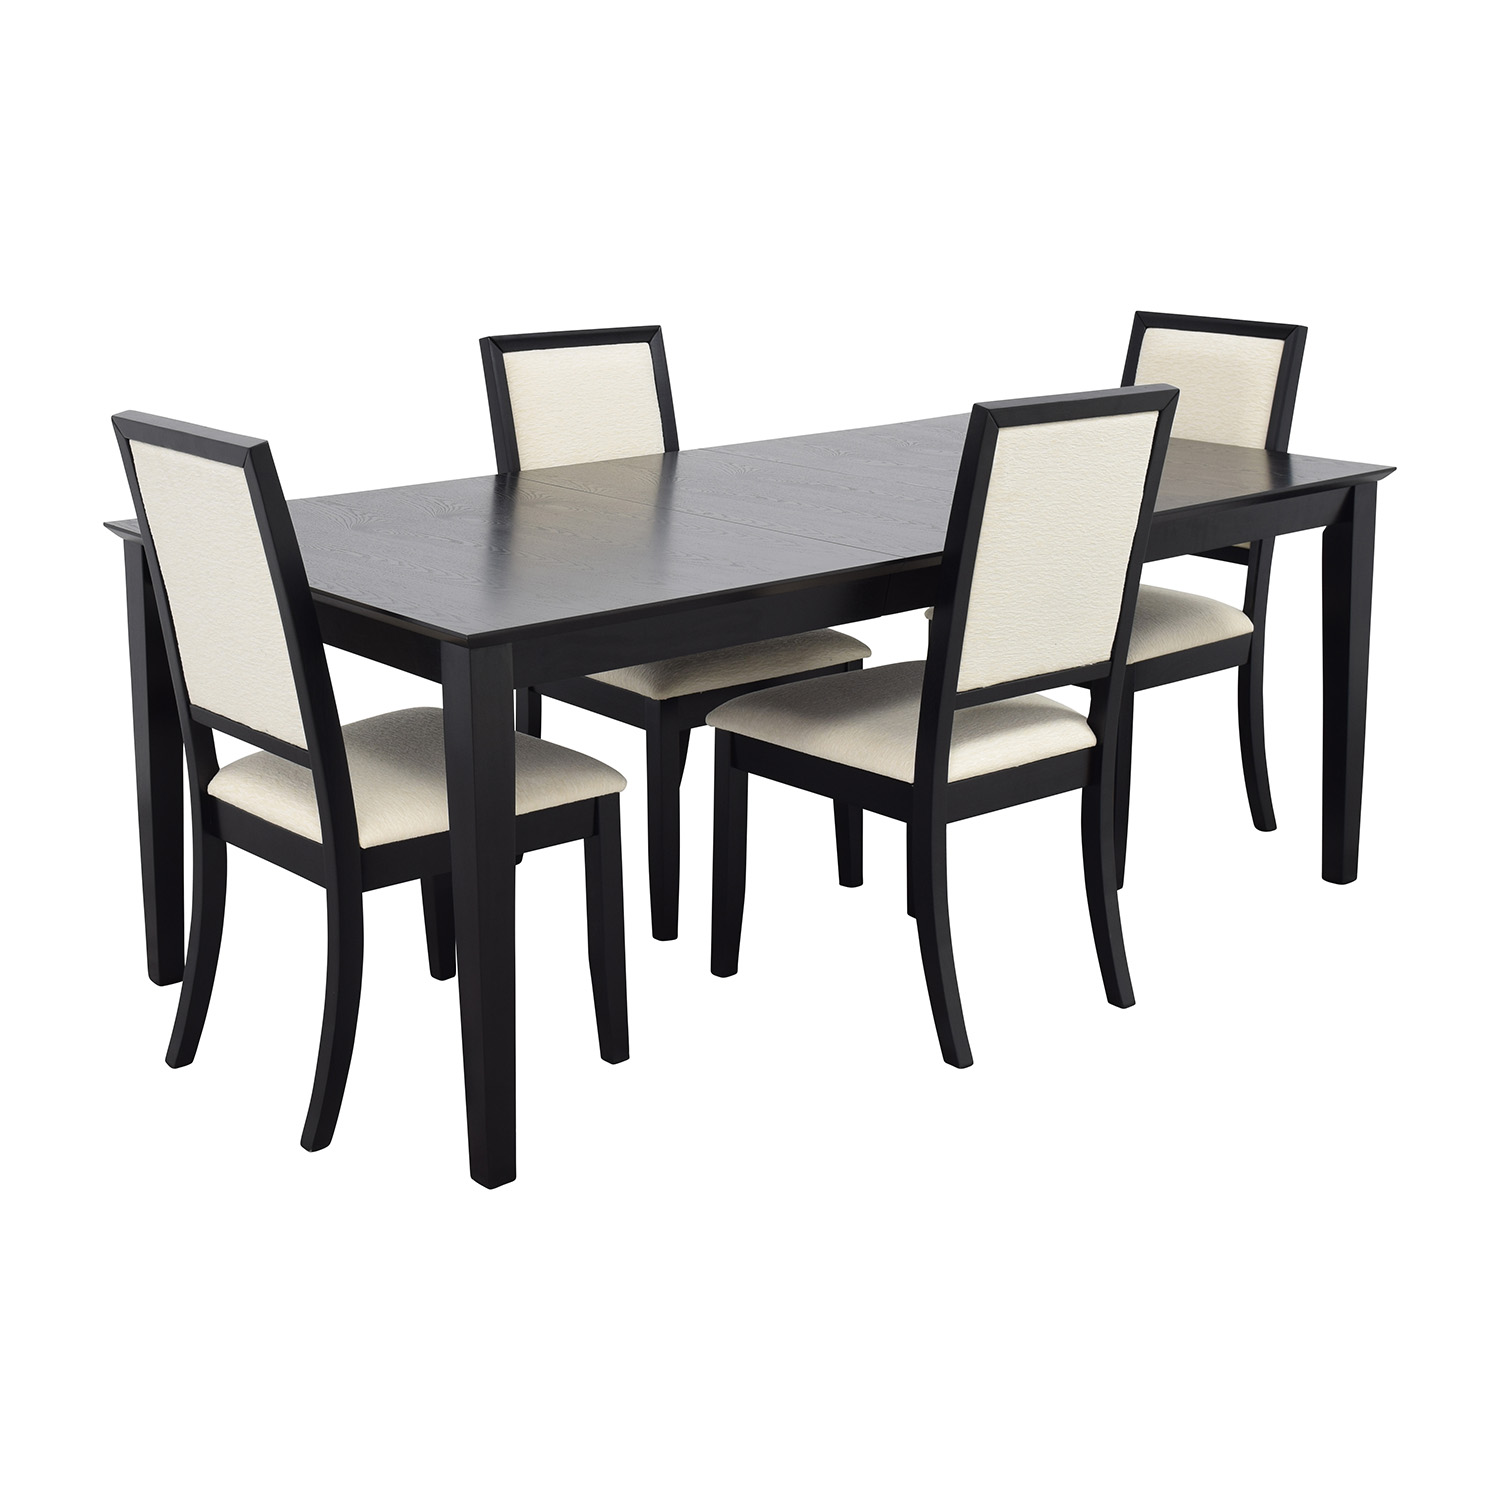 72 off harlem furniture harlem furniture black dining for Black dining sets with 4 chairs